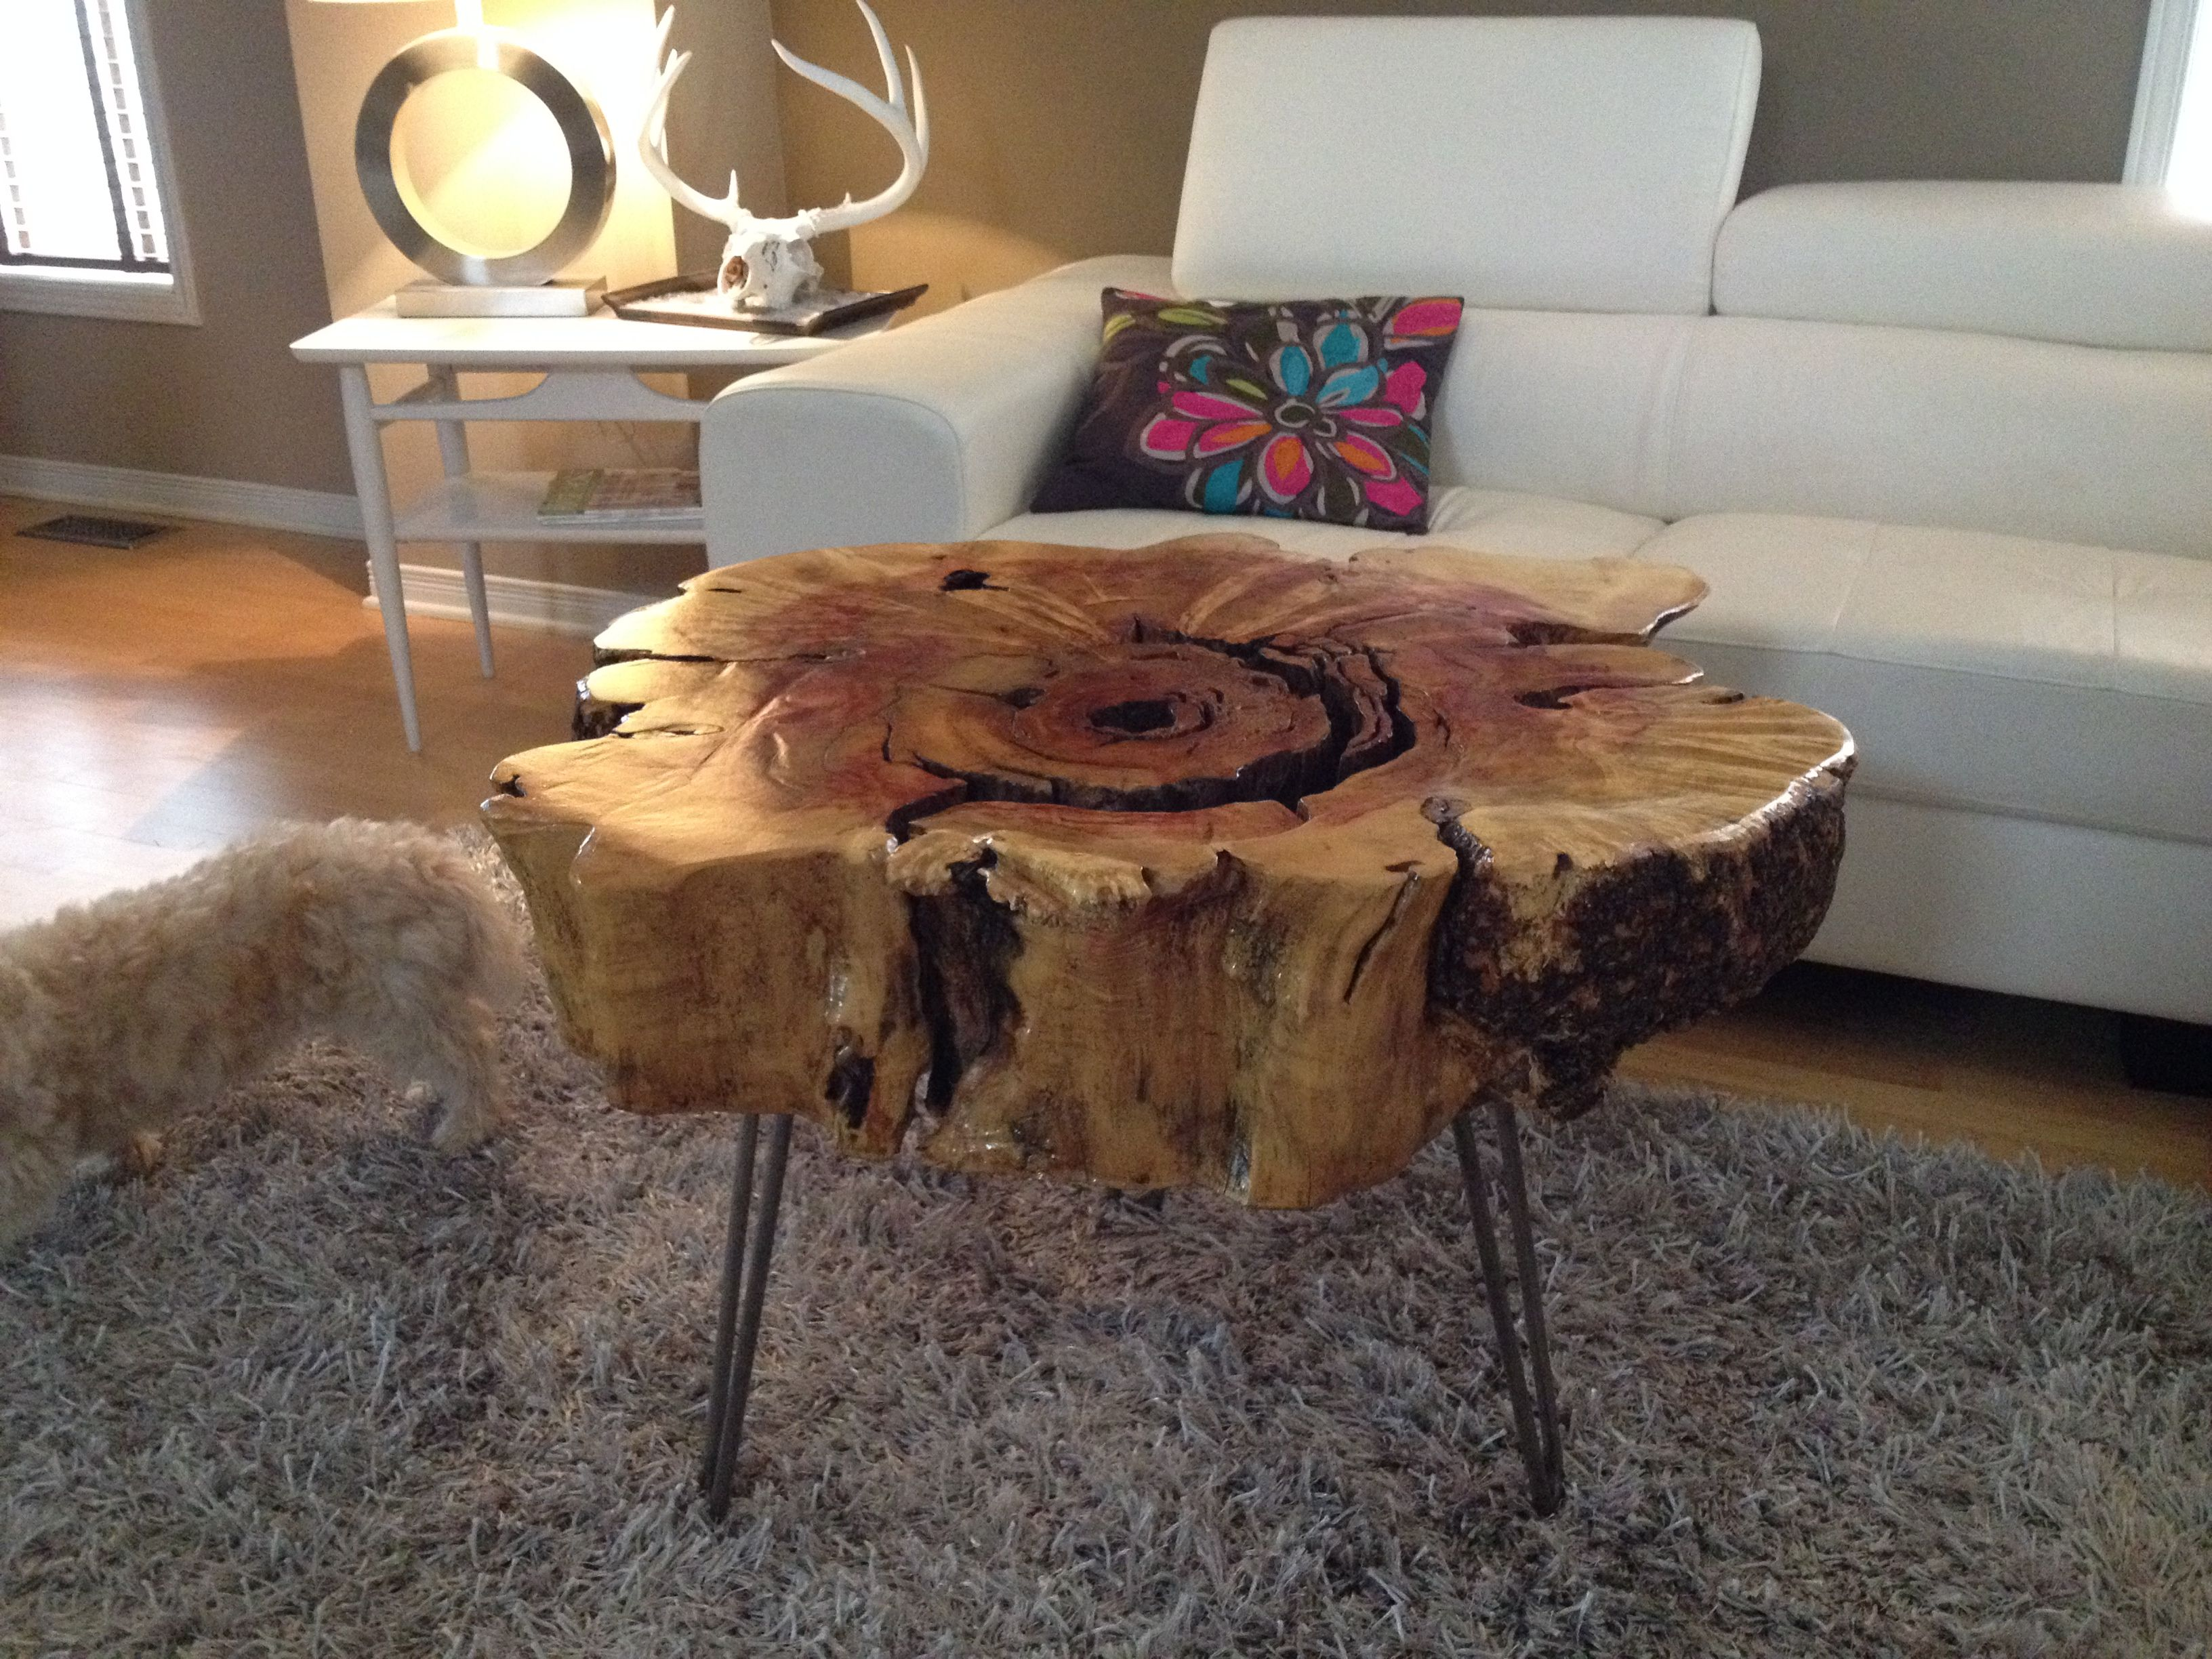 315a24e23fb6c7cab3658c9d302a90dc Coffee Table Trunks Coffee Table Reclaimed Tree Trunk Coffee Table Tree Stump Side Table Tree Slab Coffee Table